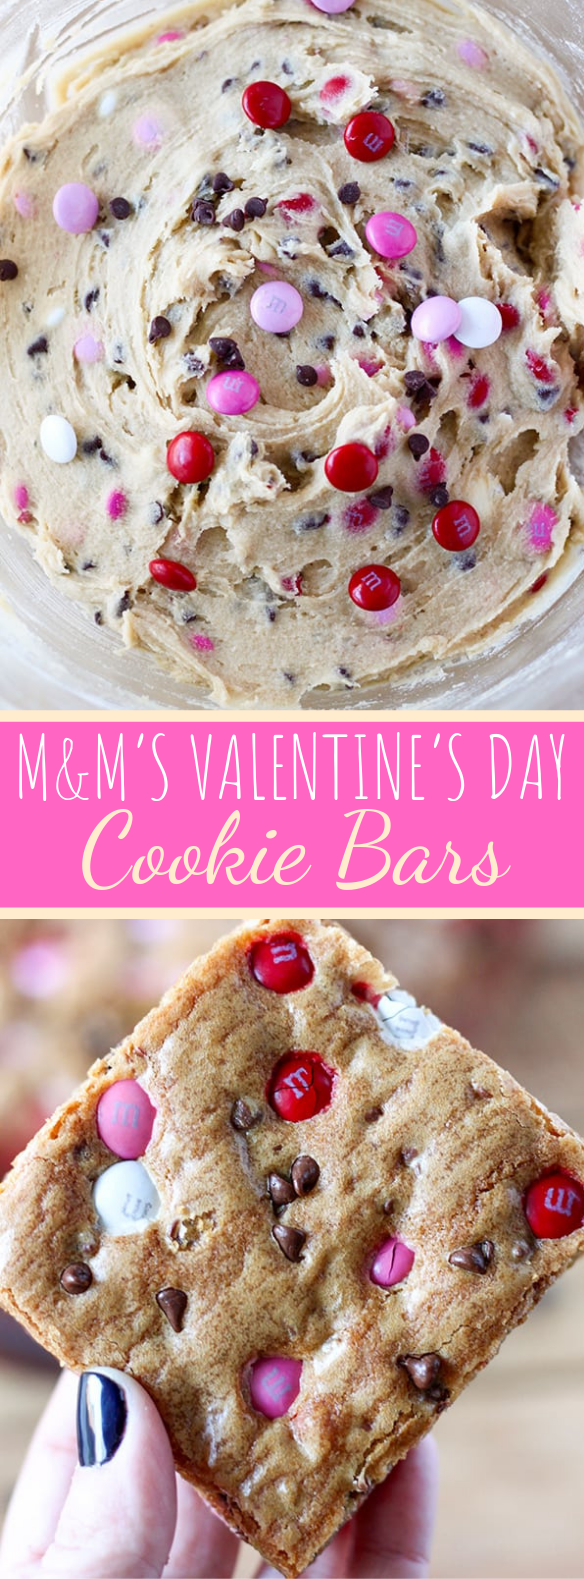 M&M'S VALENTINE'S DAY COOKIE BARS #desserts #favoriterecipe